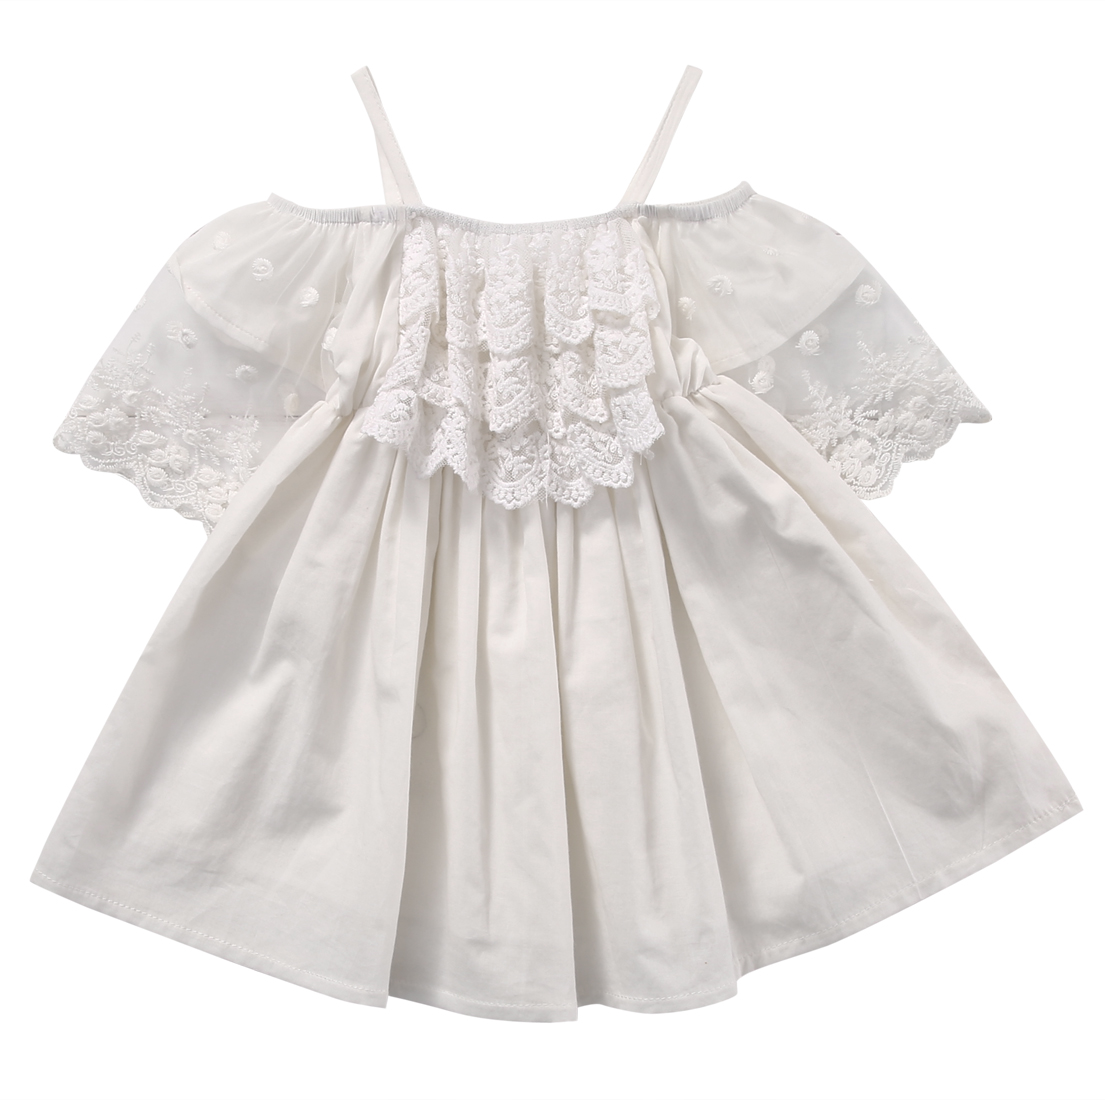 Cute Baby Kids Girls Off Shoulder Party Lace Mini Dresses 2017 Summer New Princess Dress